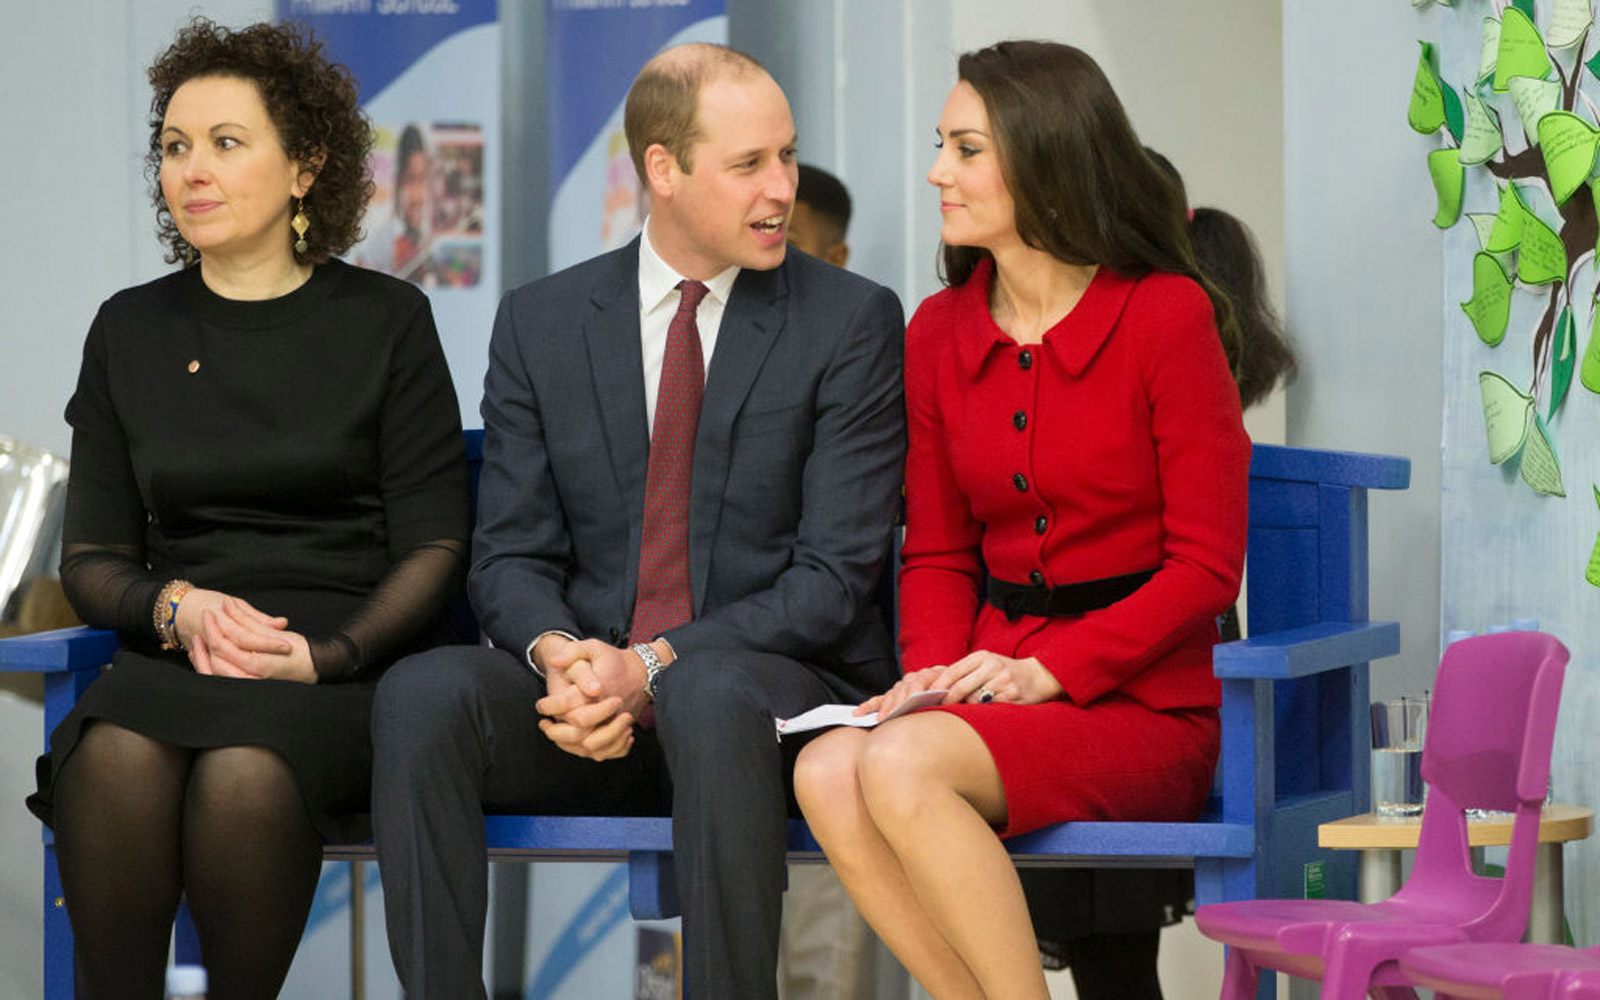 LONDON, ENGLAND - FEBRUARY 06: Prince William, Duke of Cambridge and Catherine, Duchess of Cambridge attend the Place2Be Big Assembly With Heads Together for Children's Mental Health Week at Mitchell Brook Primary School on February 6, 2017 in London, Eng